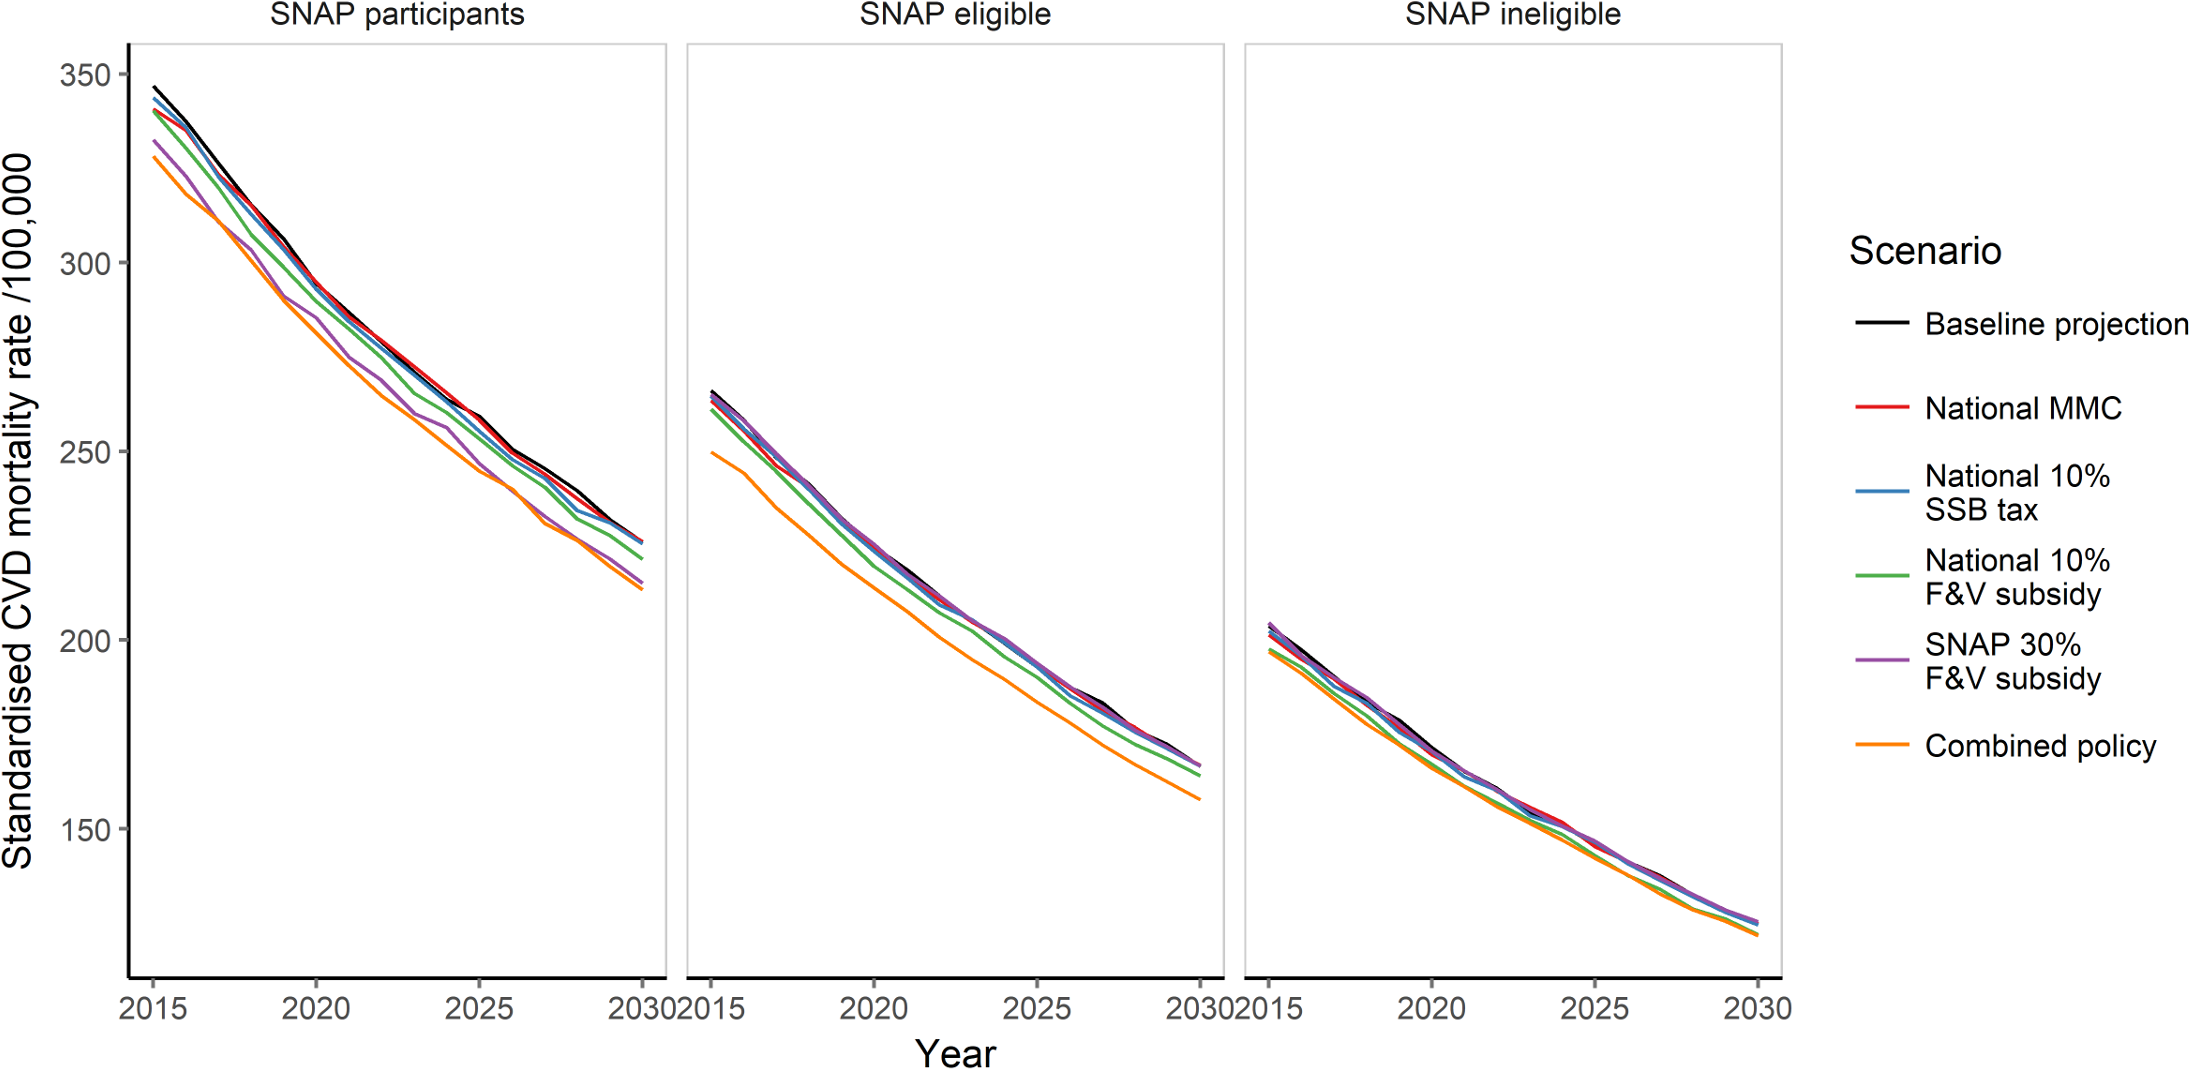 Standardised cardiovascular disease mortality rate (per 100,000 population) from 2015 to 2030 under for baseline projection and all policy scenarios, by SNAP group.